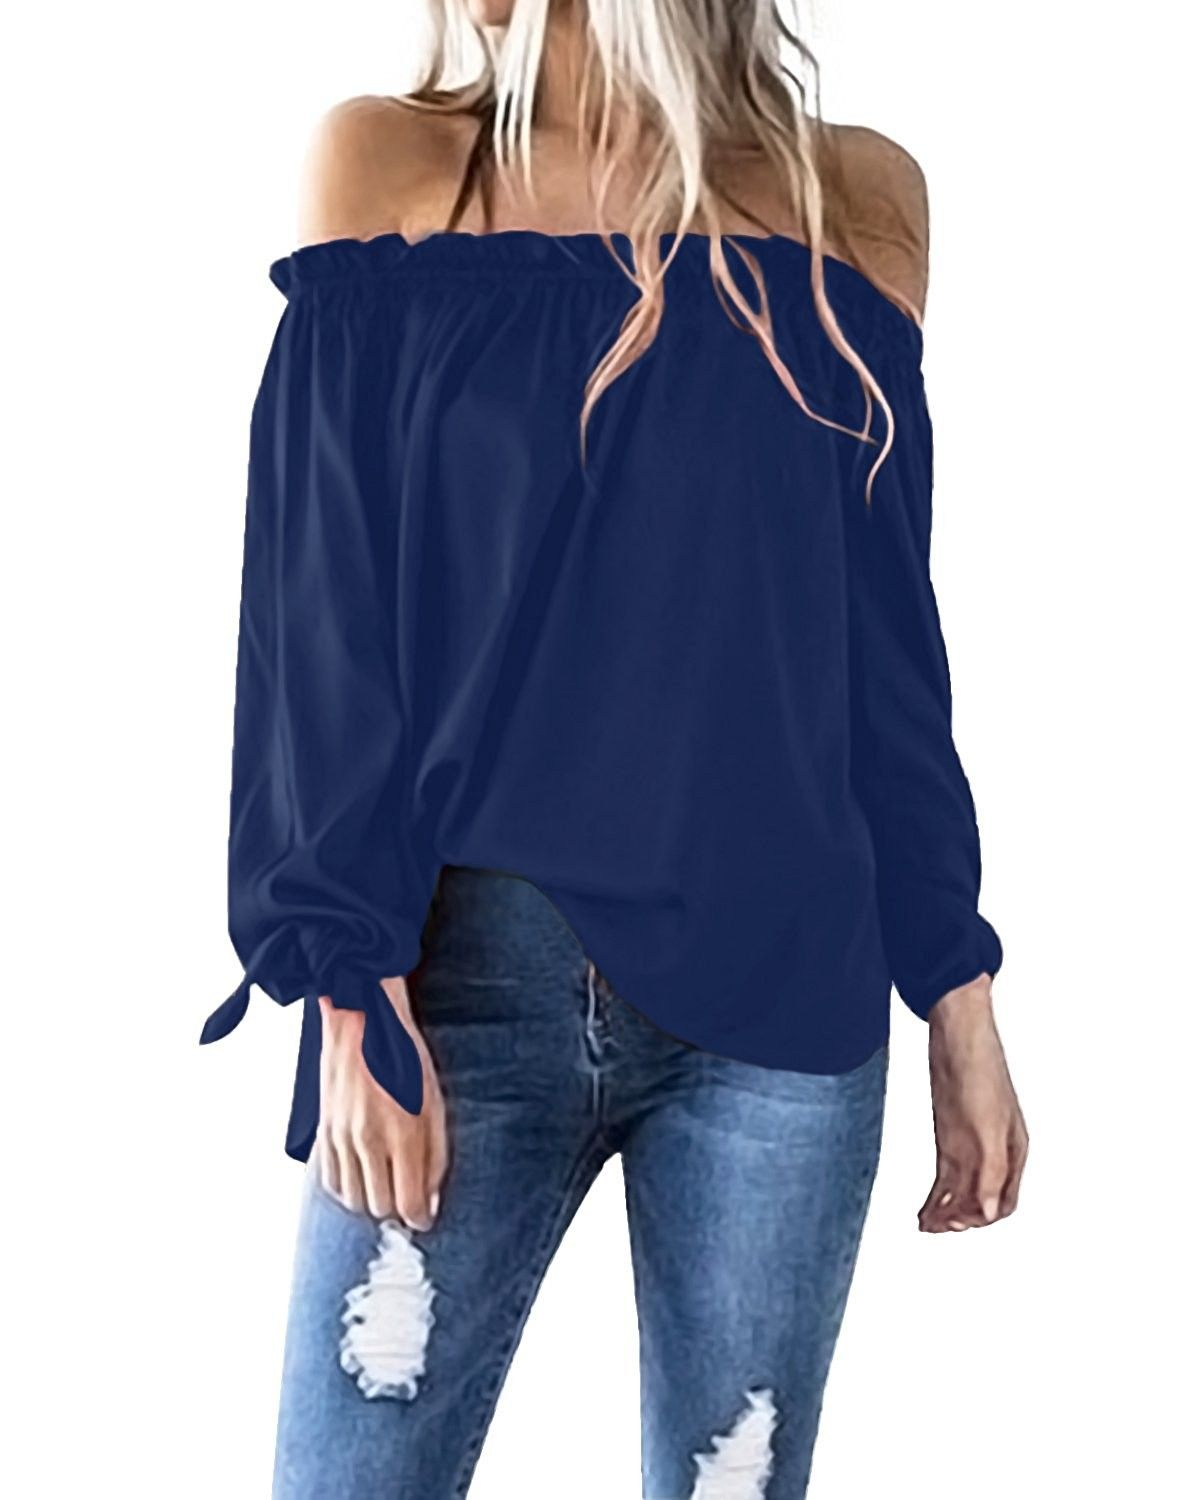 ac2082639ef2 Women s Clothing, Tops   Tees, Blouses   Button-Down Shirts, Women s Sexy